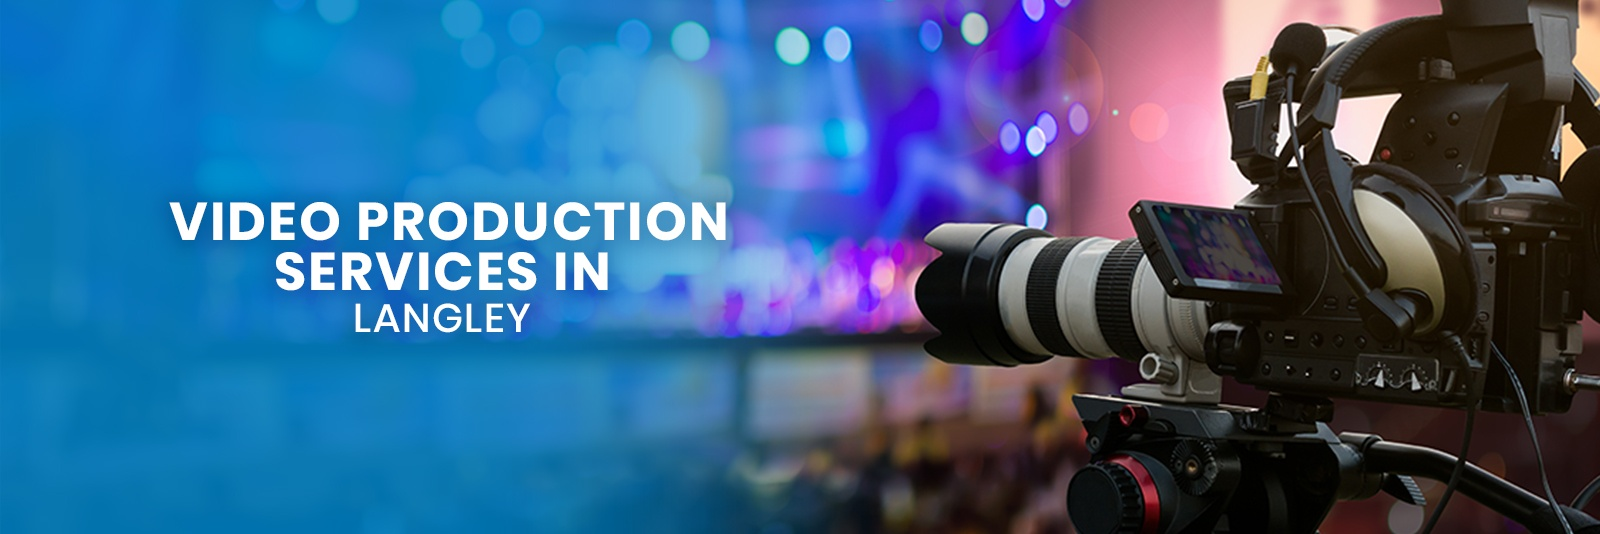 Video Production Services In Langley